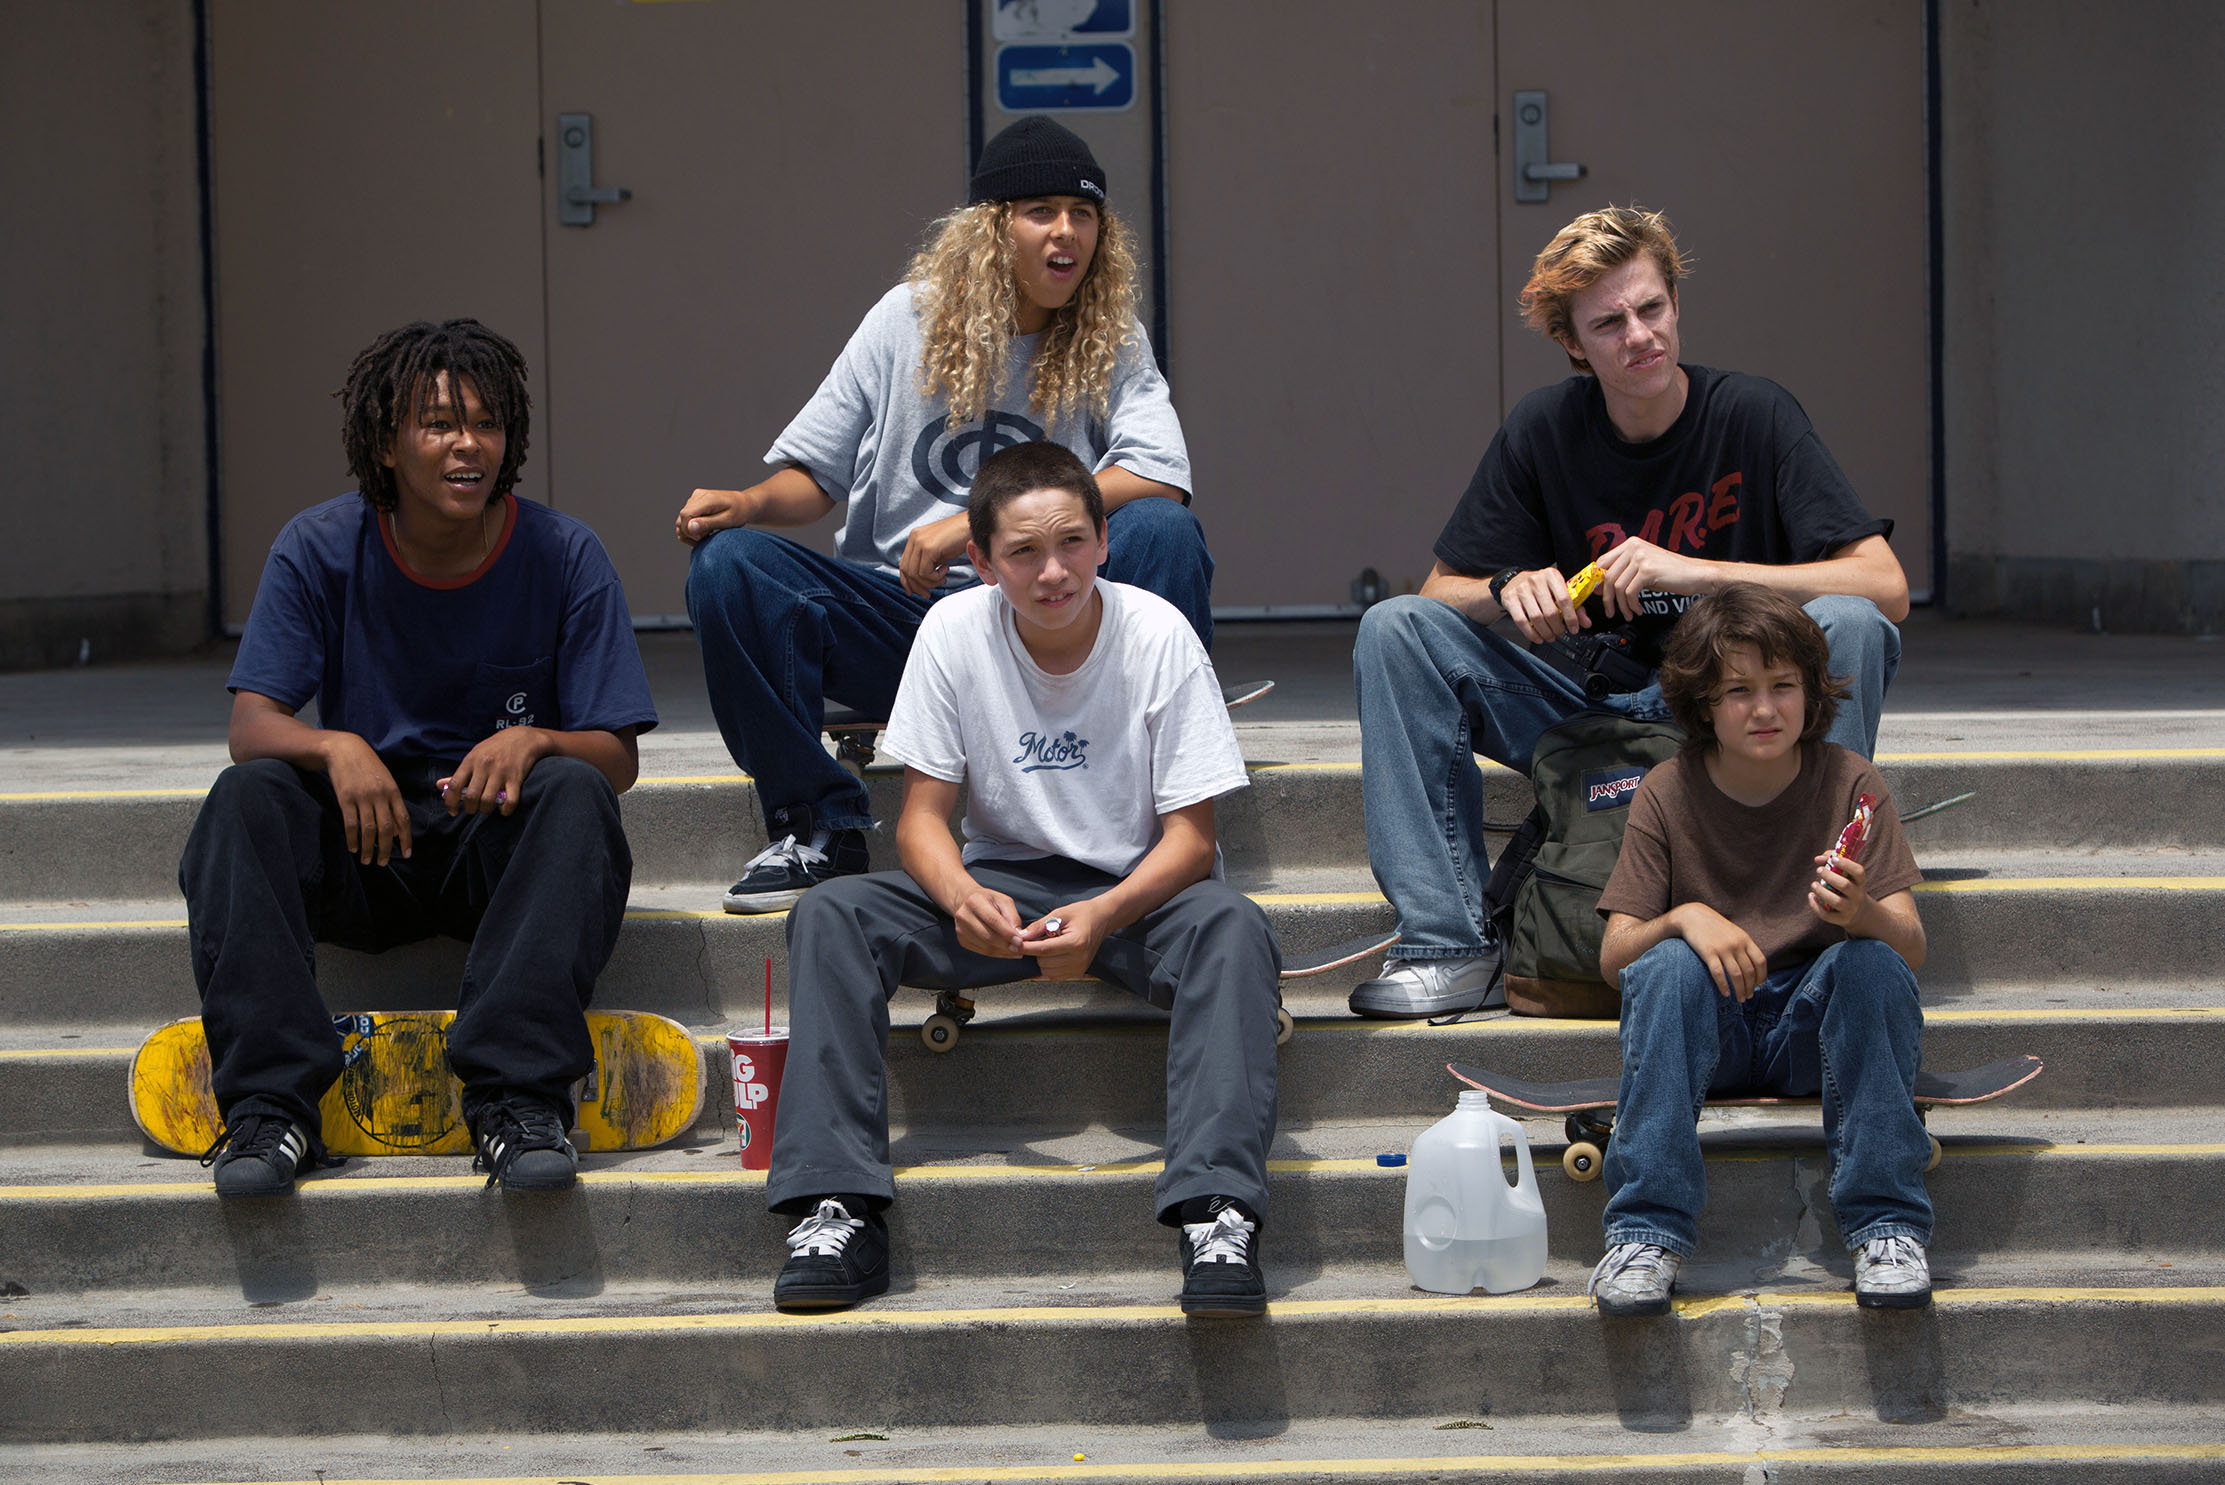 To celebrate the release of Jonah Hill's film, mid90s, on Blu-ray and DVD on Mon 26 Aug 2019, we're giving away DVD copies.